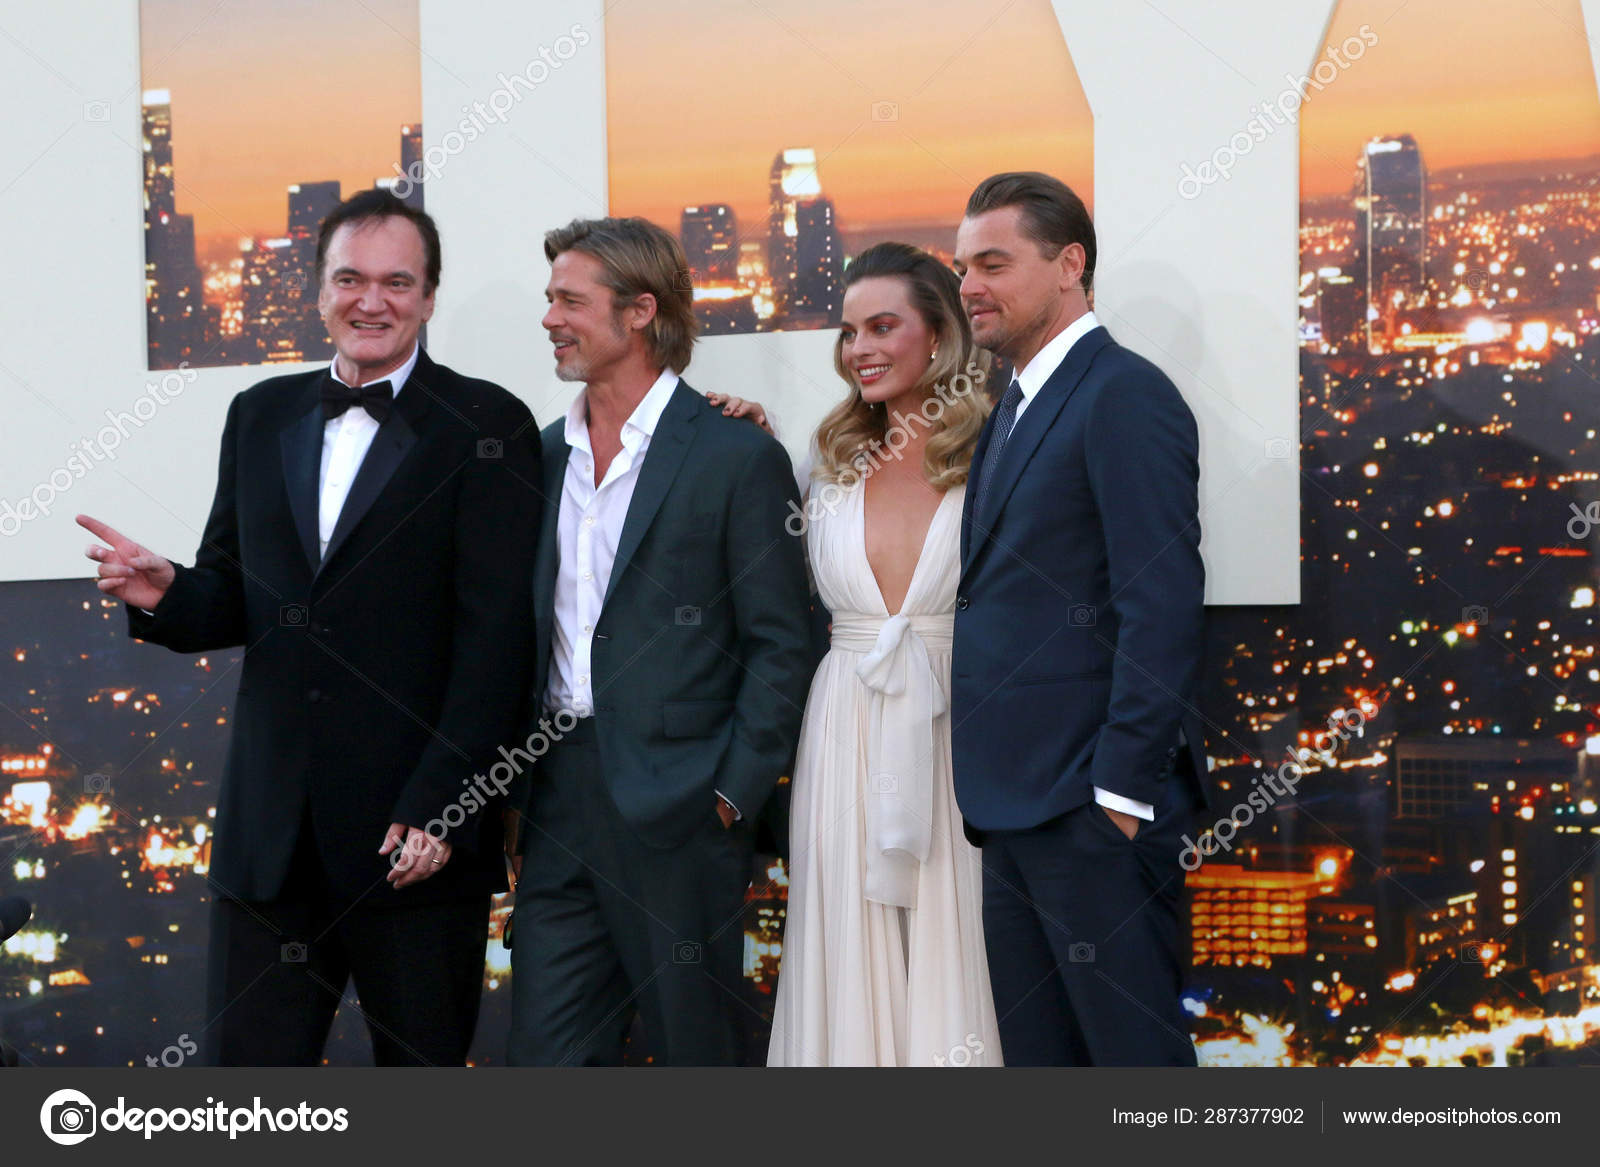 Once Upon A Time At Christmas 2019.Once Upon A Time In Hollywood Premiere Stock Editorial